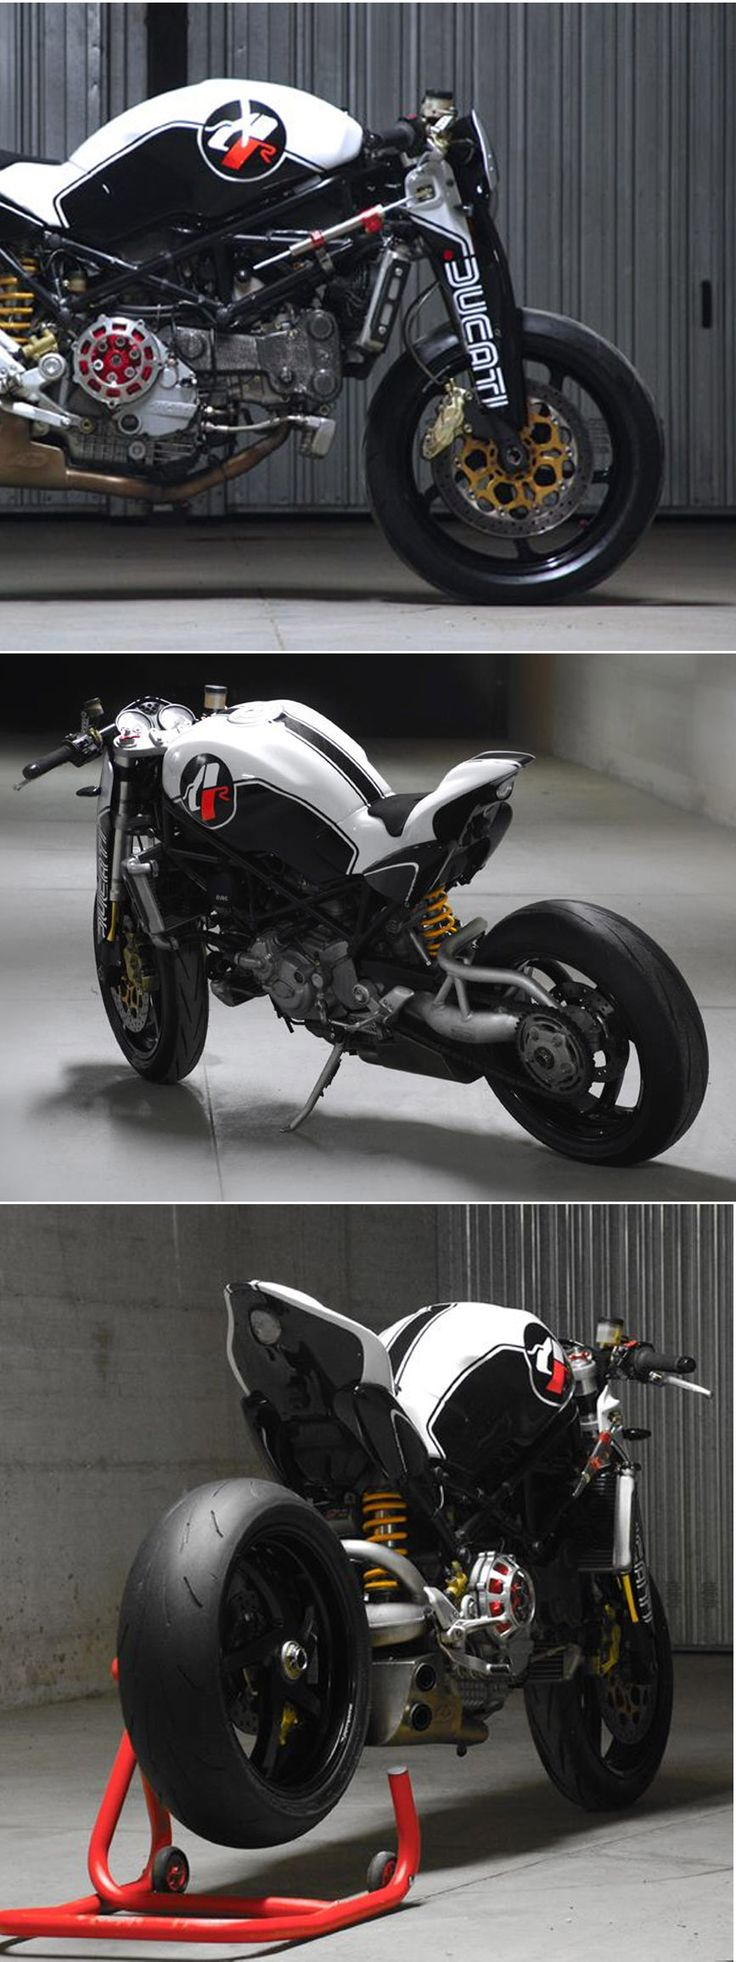 161 Best Motos Images On Pinterest Motorcycles Cars And Custom Bikes Ducati 851 Wiring Diagram Monster Ms4r By Paolo Tesio